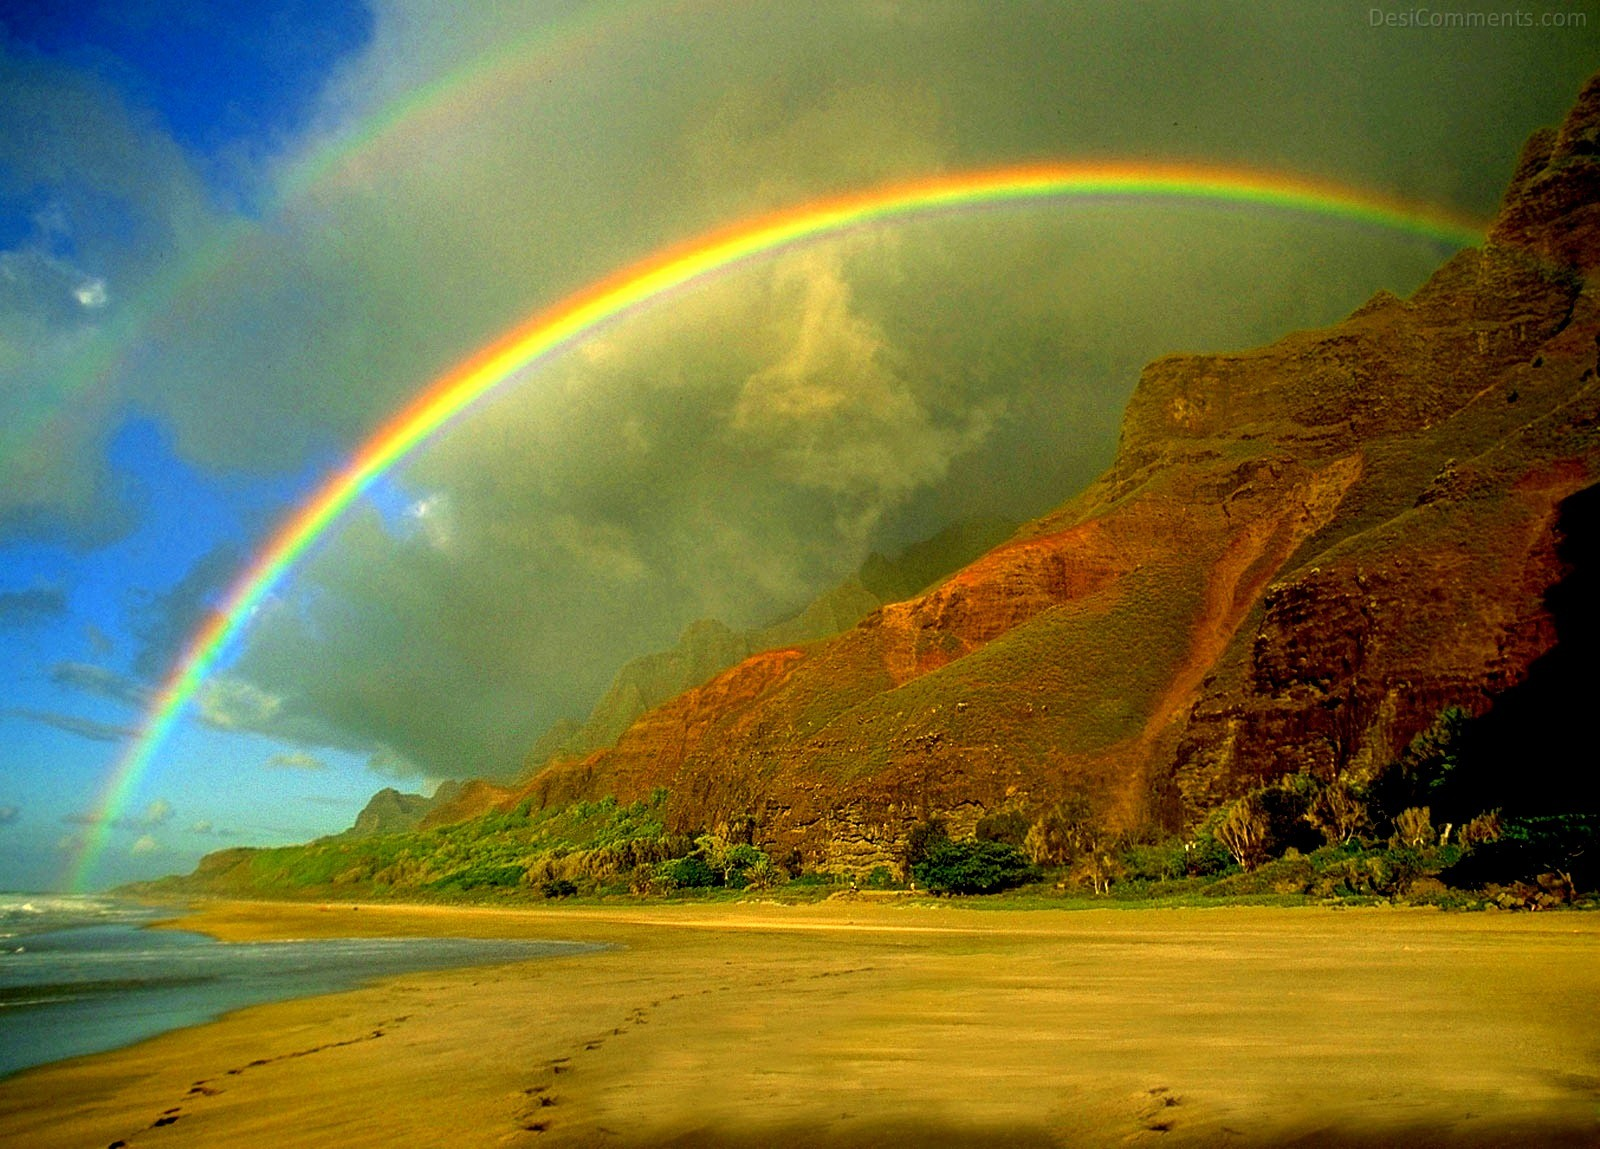 Beautiful Rainbow Nature Mountain - DesiComments.com